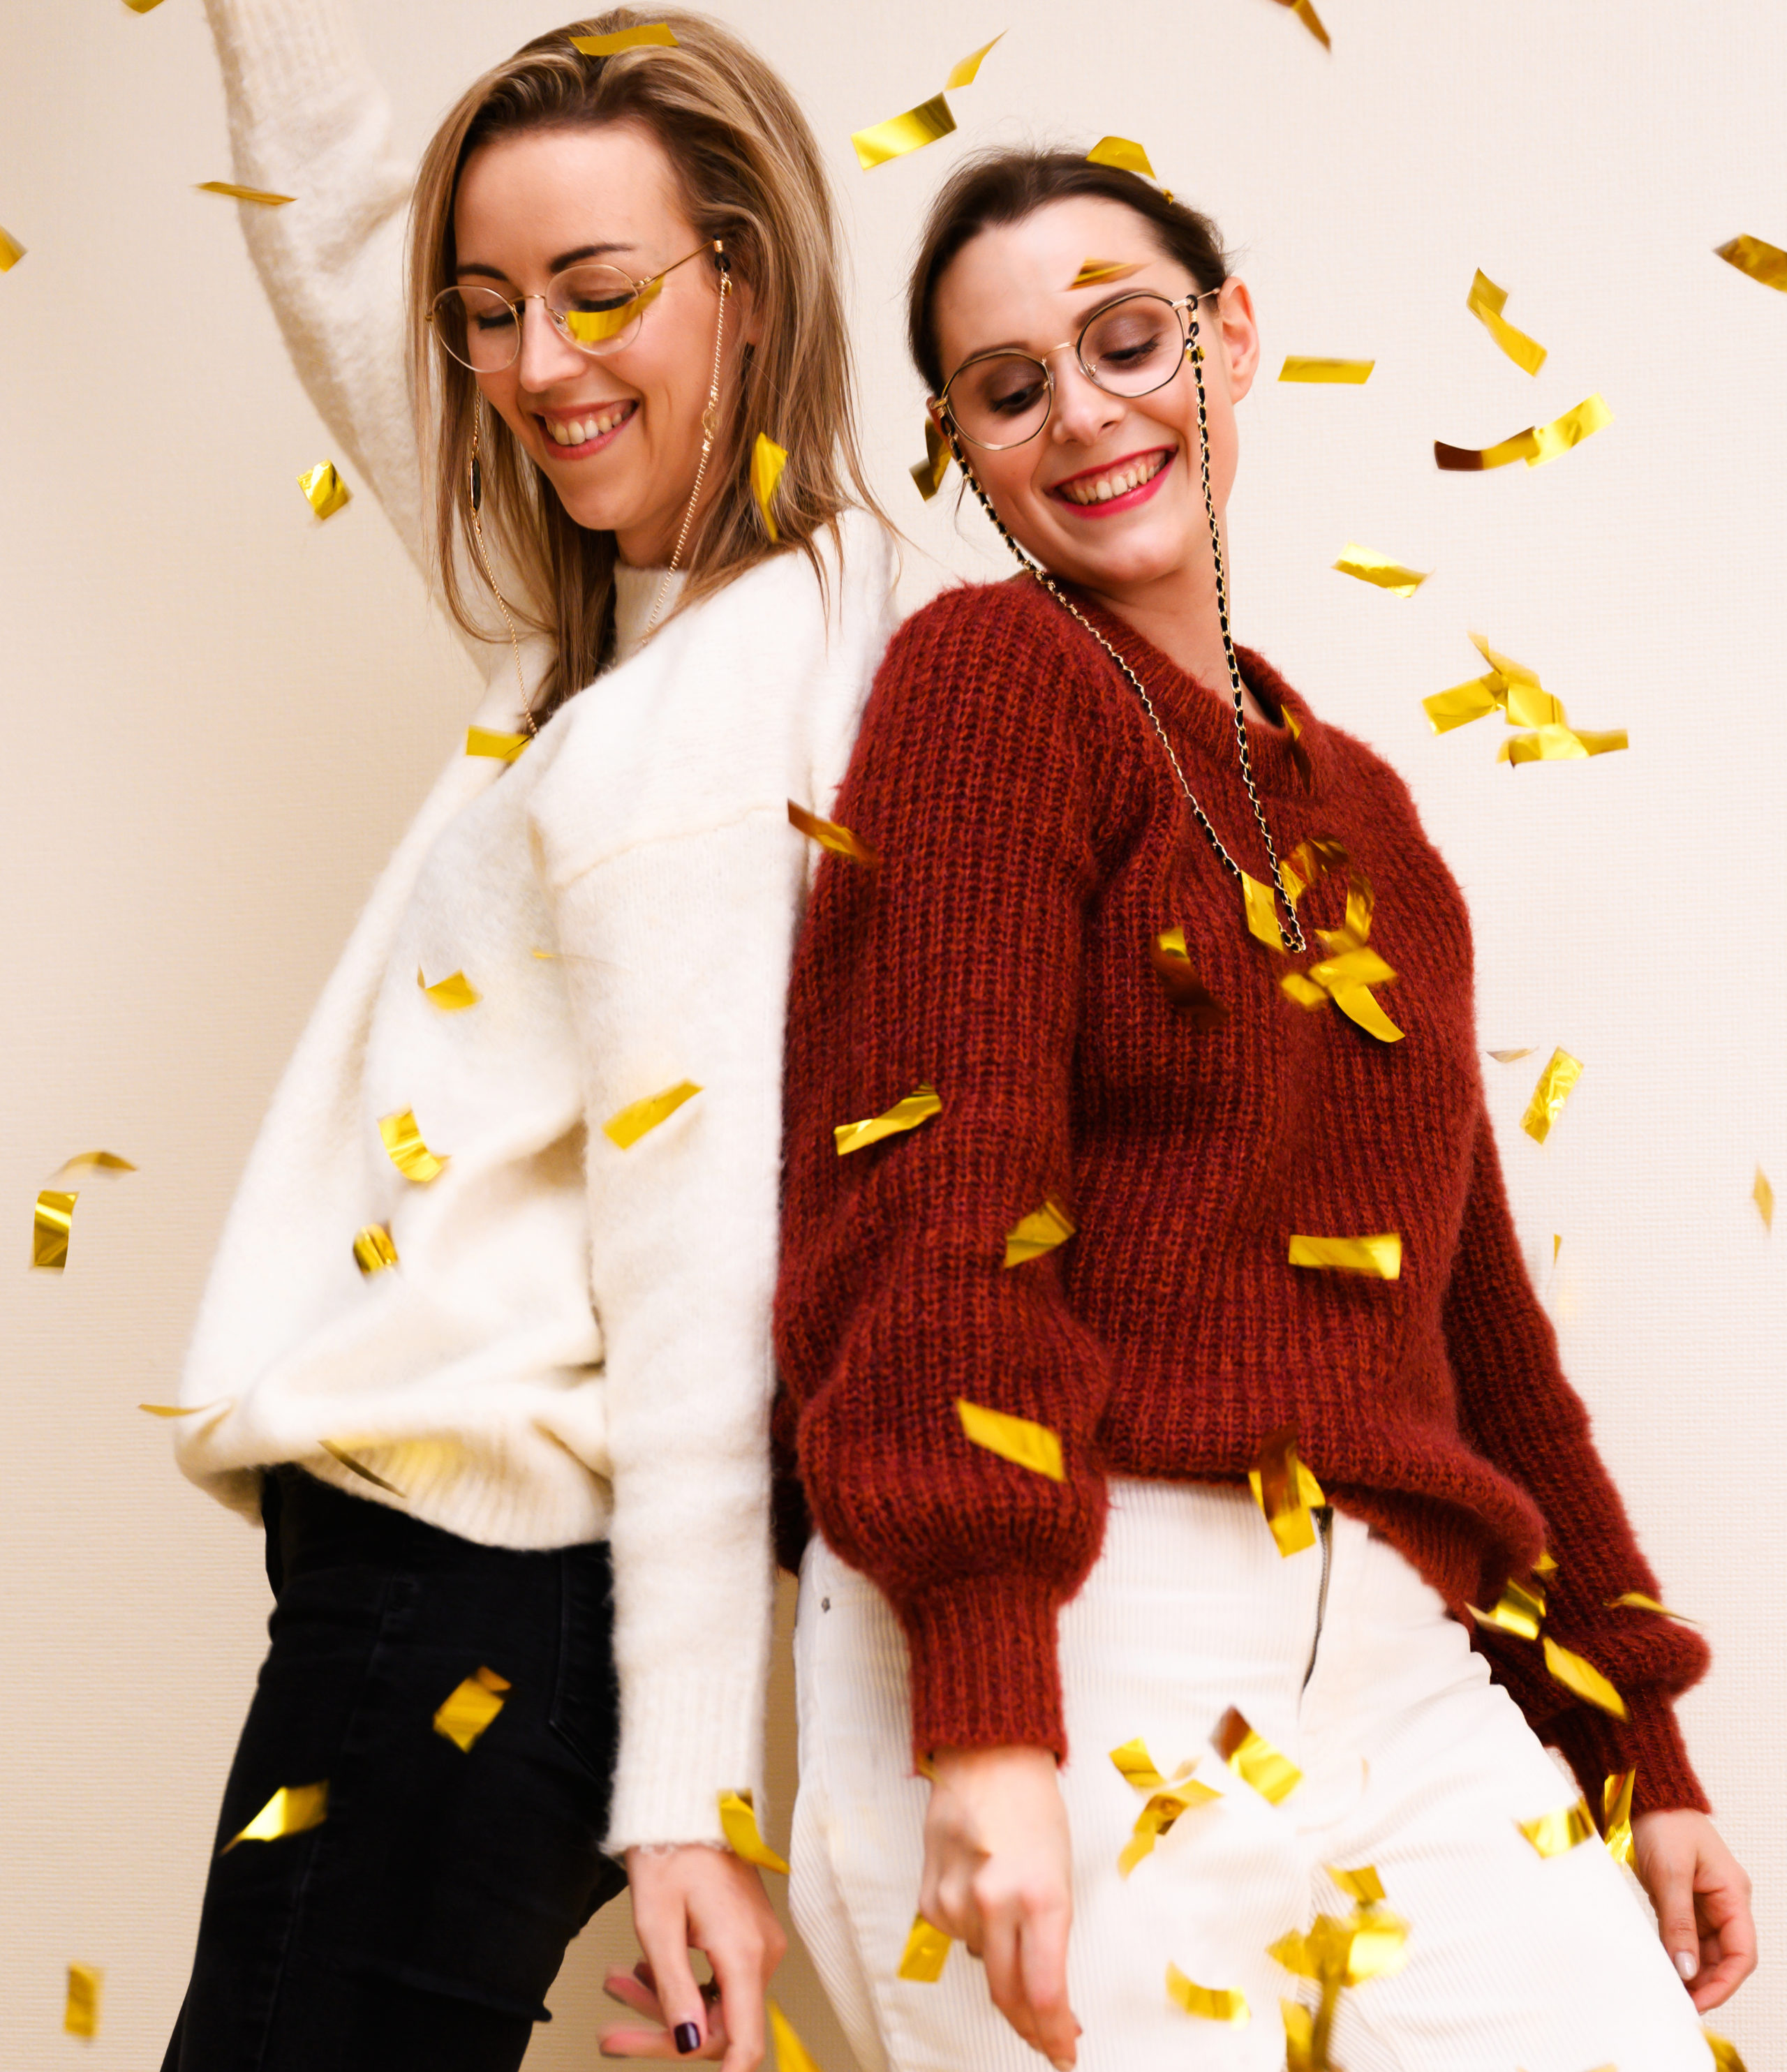 Lookbook Winter 2019: New year, new look • Frames and Faces